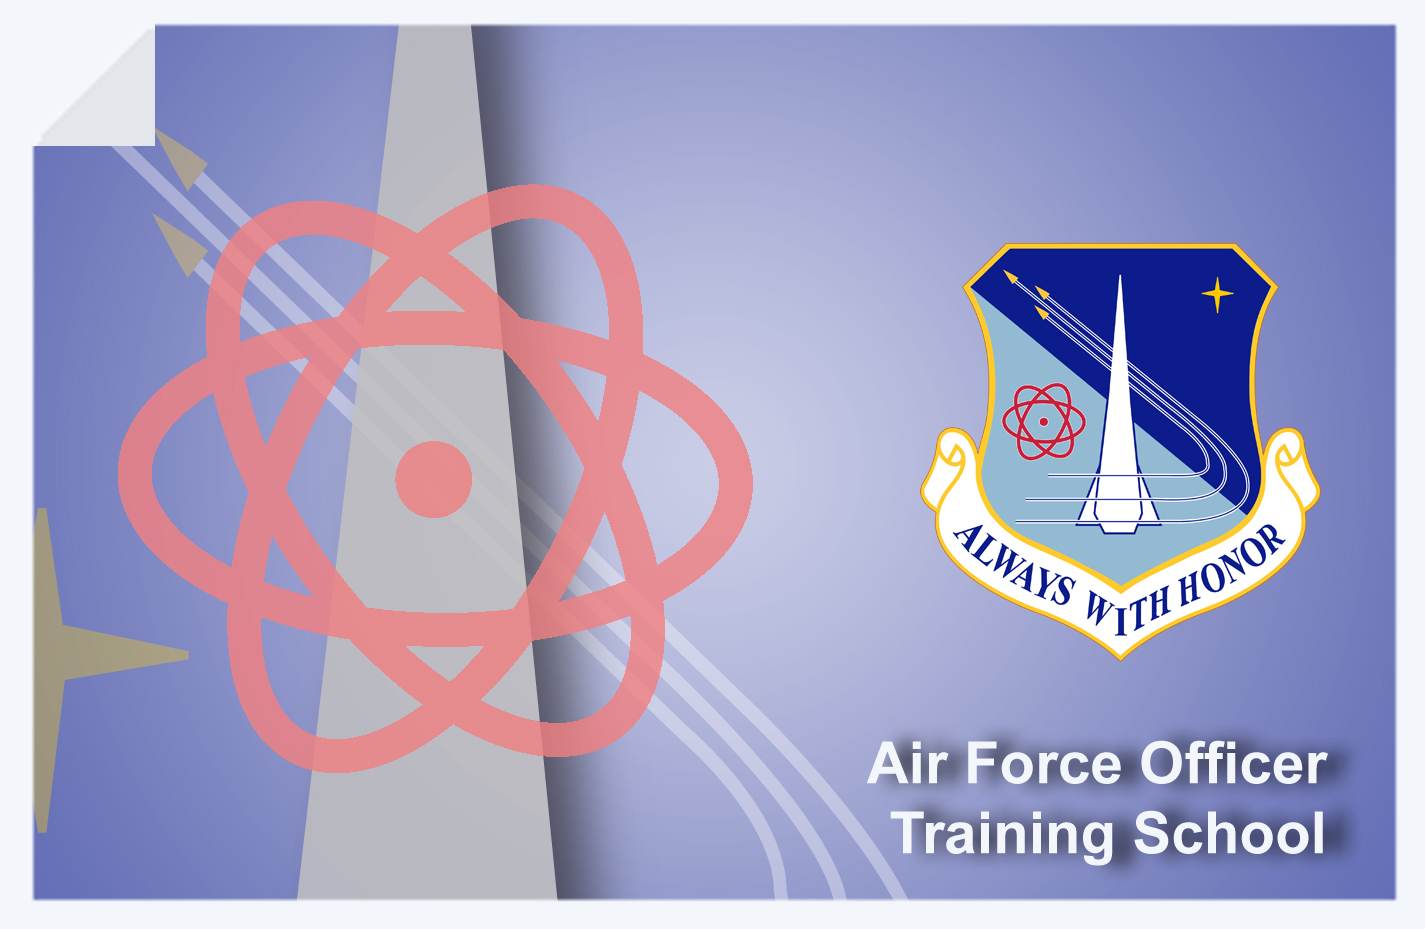 Officer training school u s air force fact sheet display - Military officer training school ...